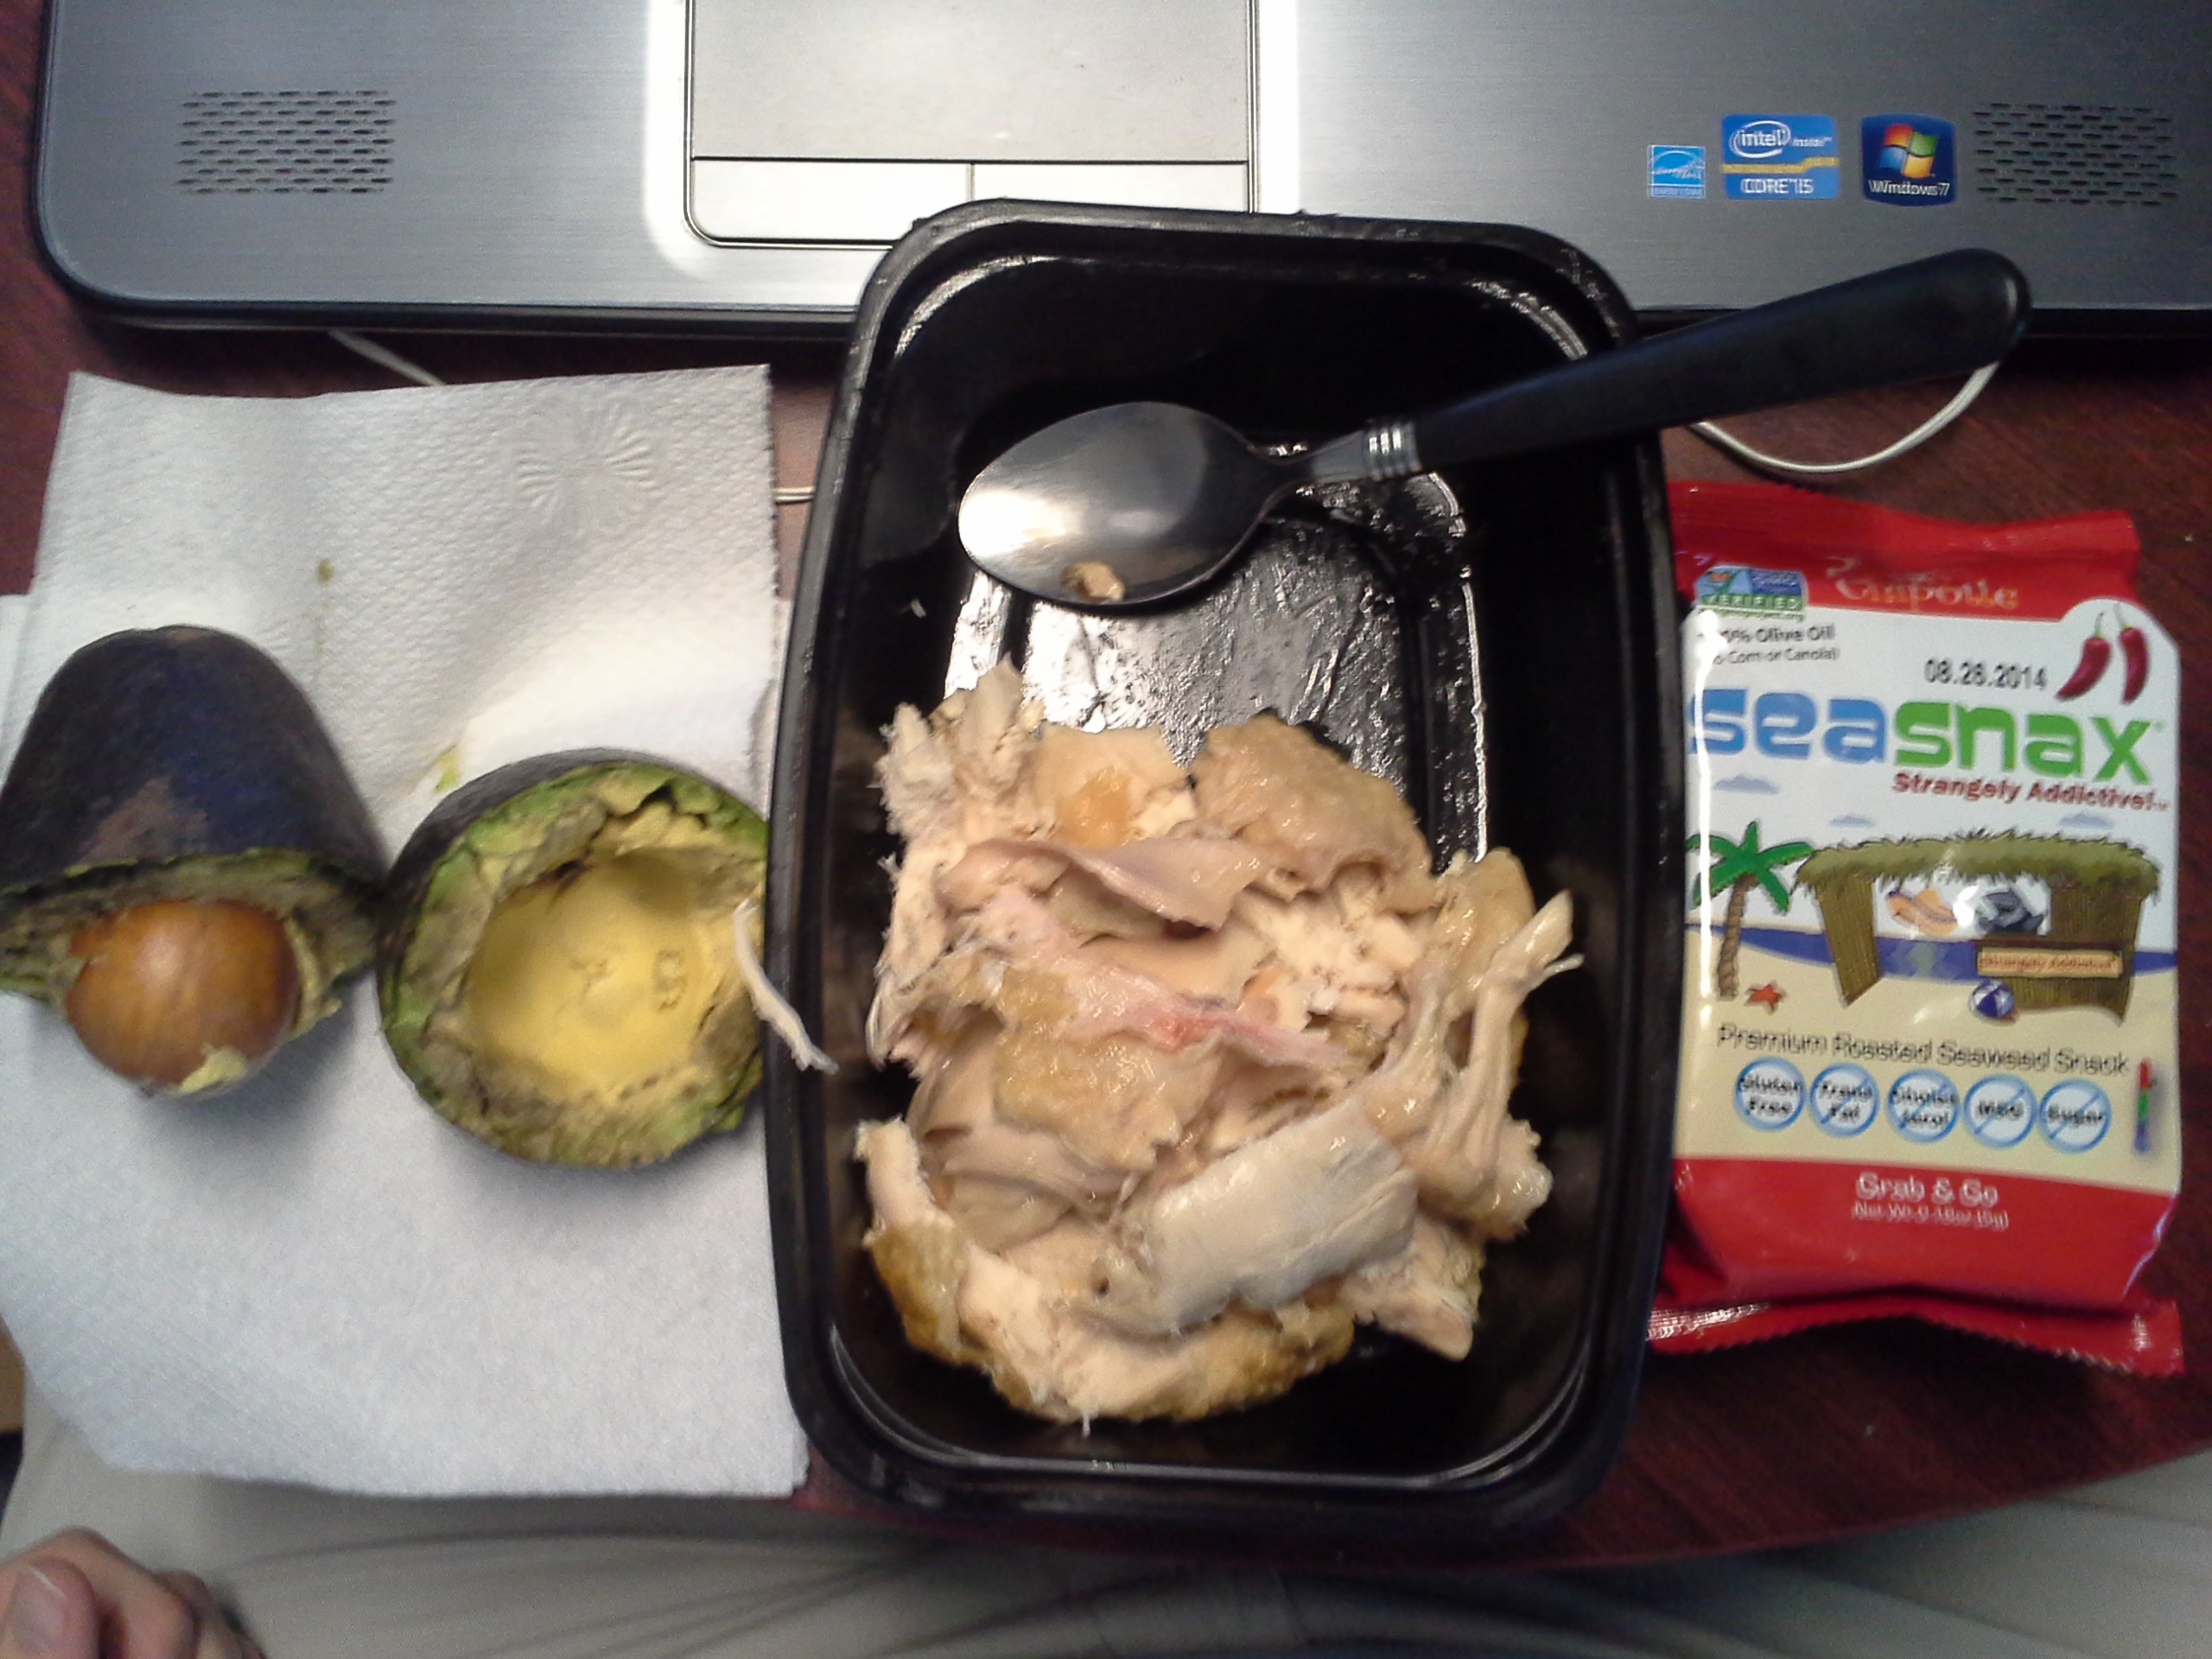 Lunch: 3:30 p.m. | Leftover rotisserie chicken, 1 avocado, .18 oz. chipotle SeaSnax seaweed